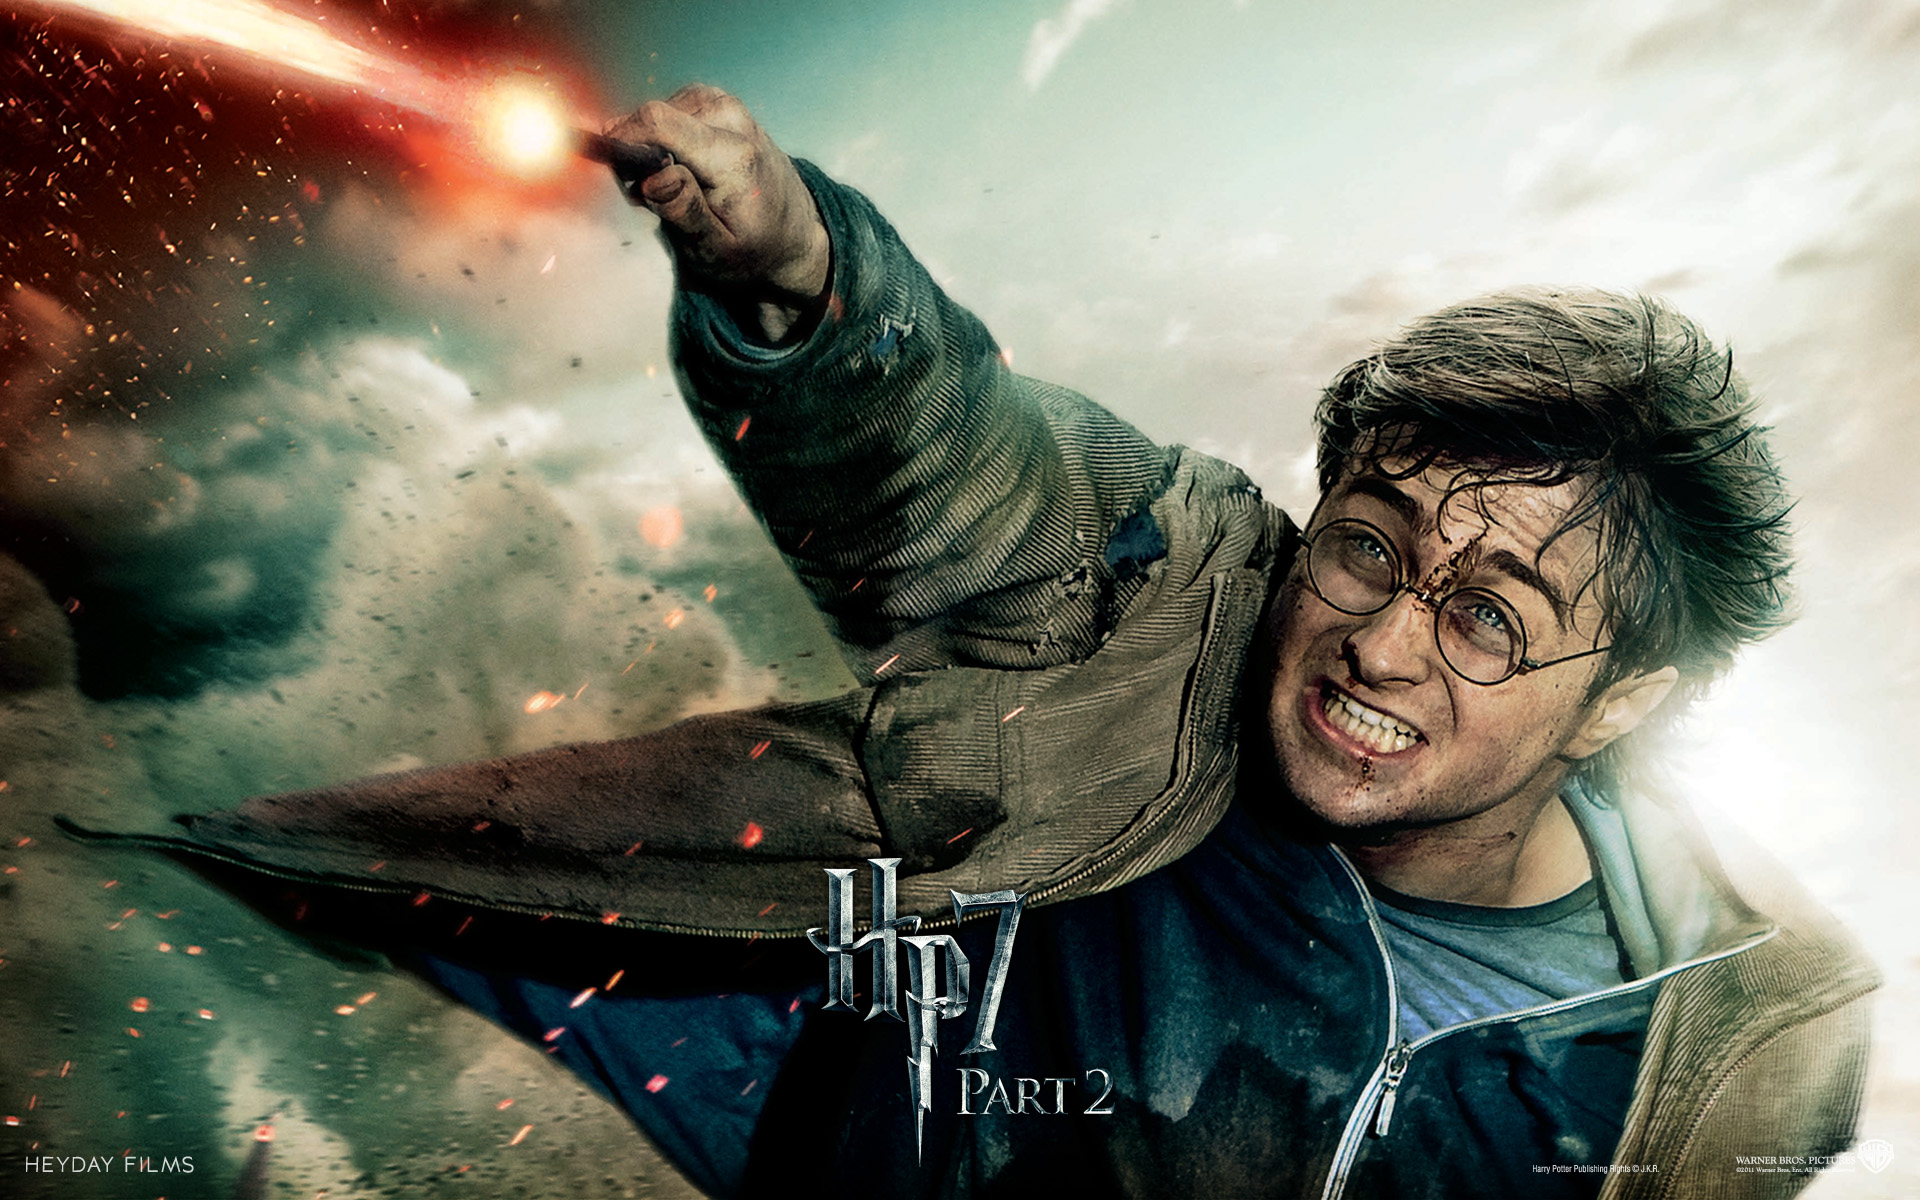 Harry Potter in Deathly Hallows Part 2 424.93 Kb